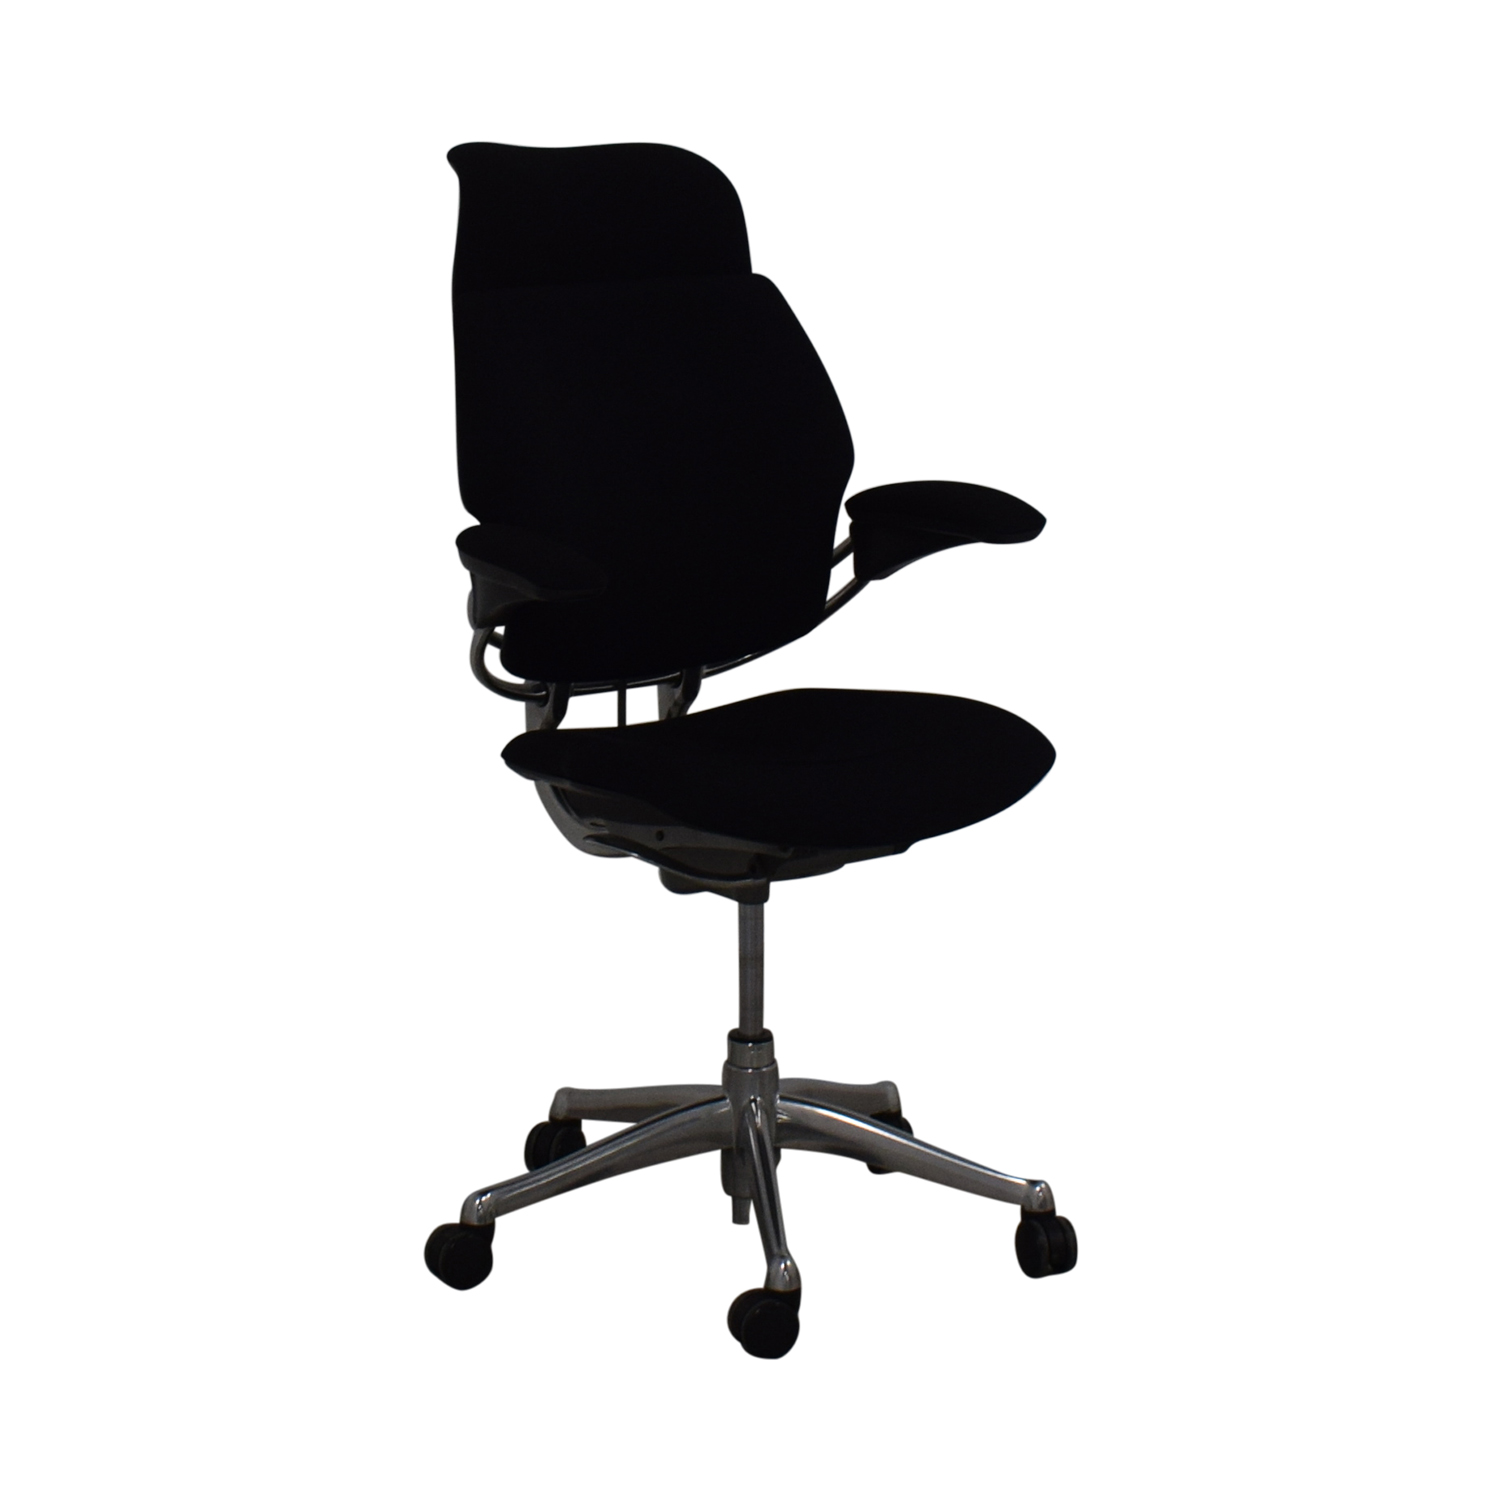 buy Humanscale Desk Chair Humanscale